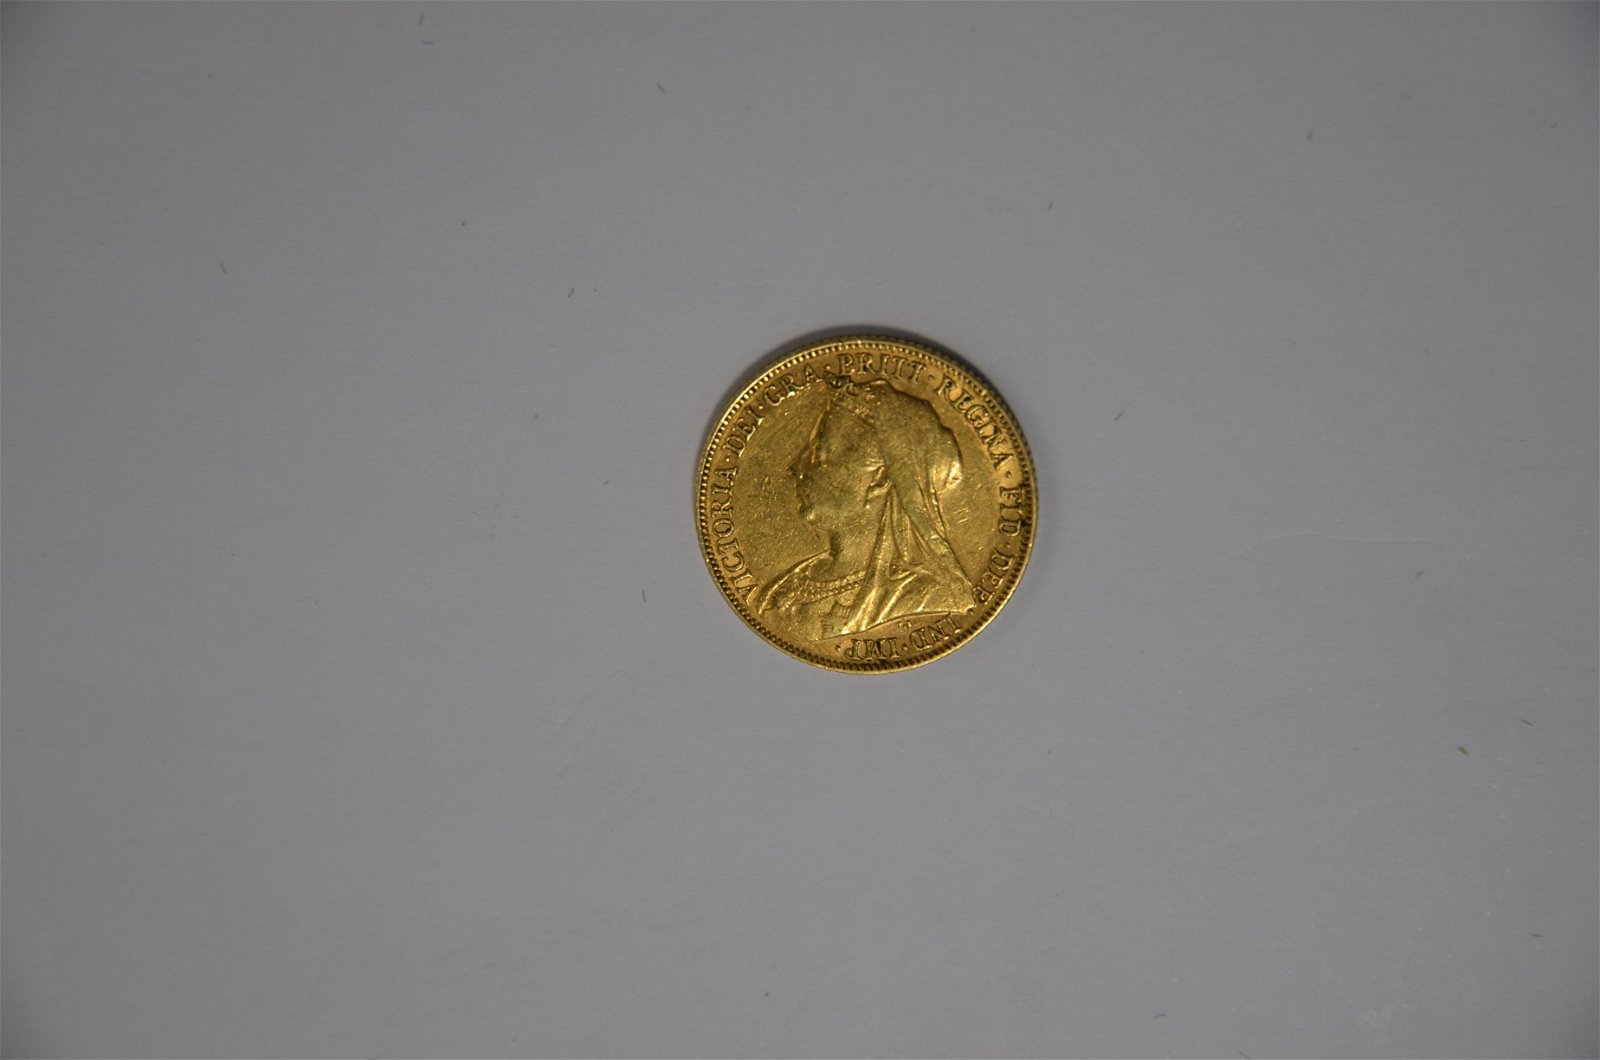 A Victorian gold sovereign dated 1897